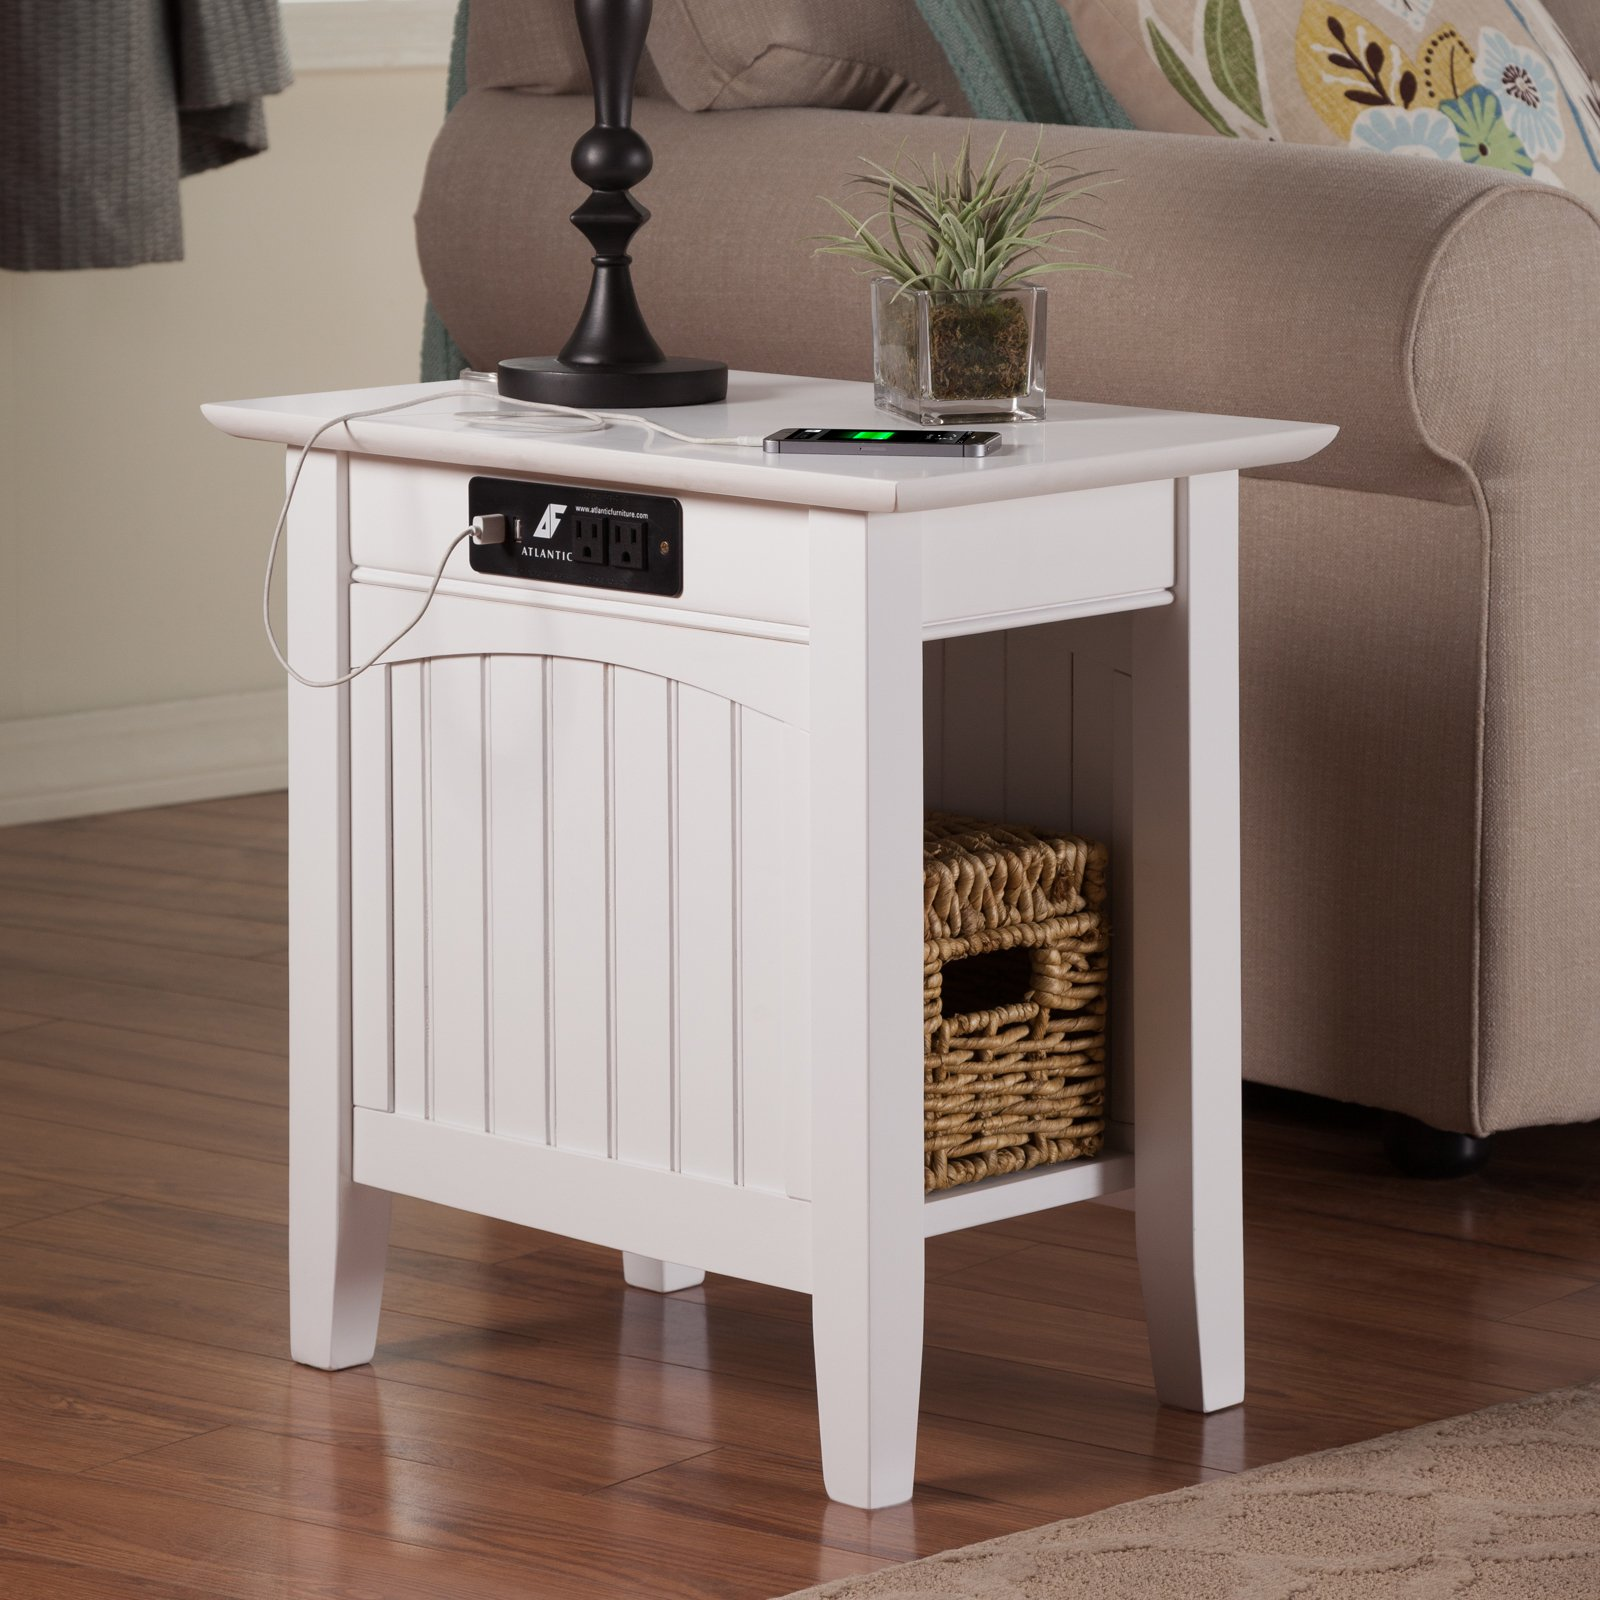 Atlantic Furniture Charlotte Chair Side Table With Charging Station